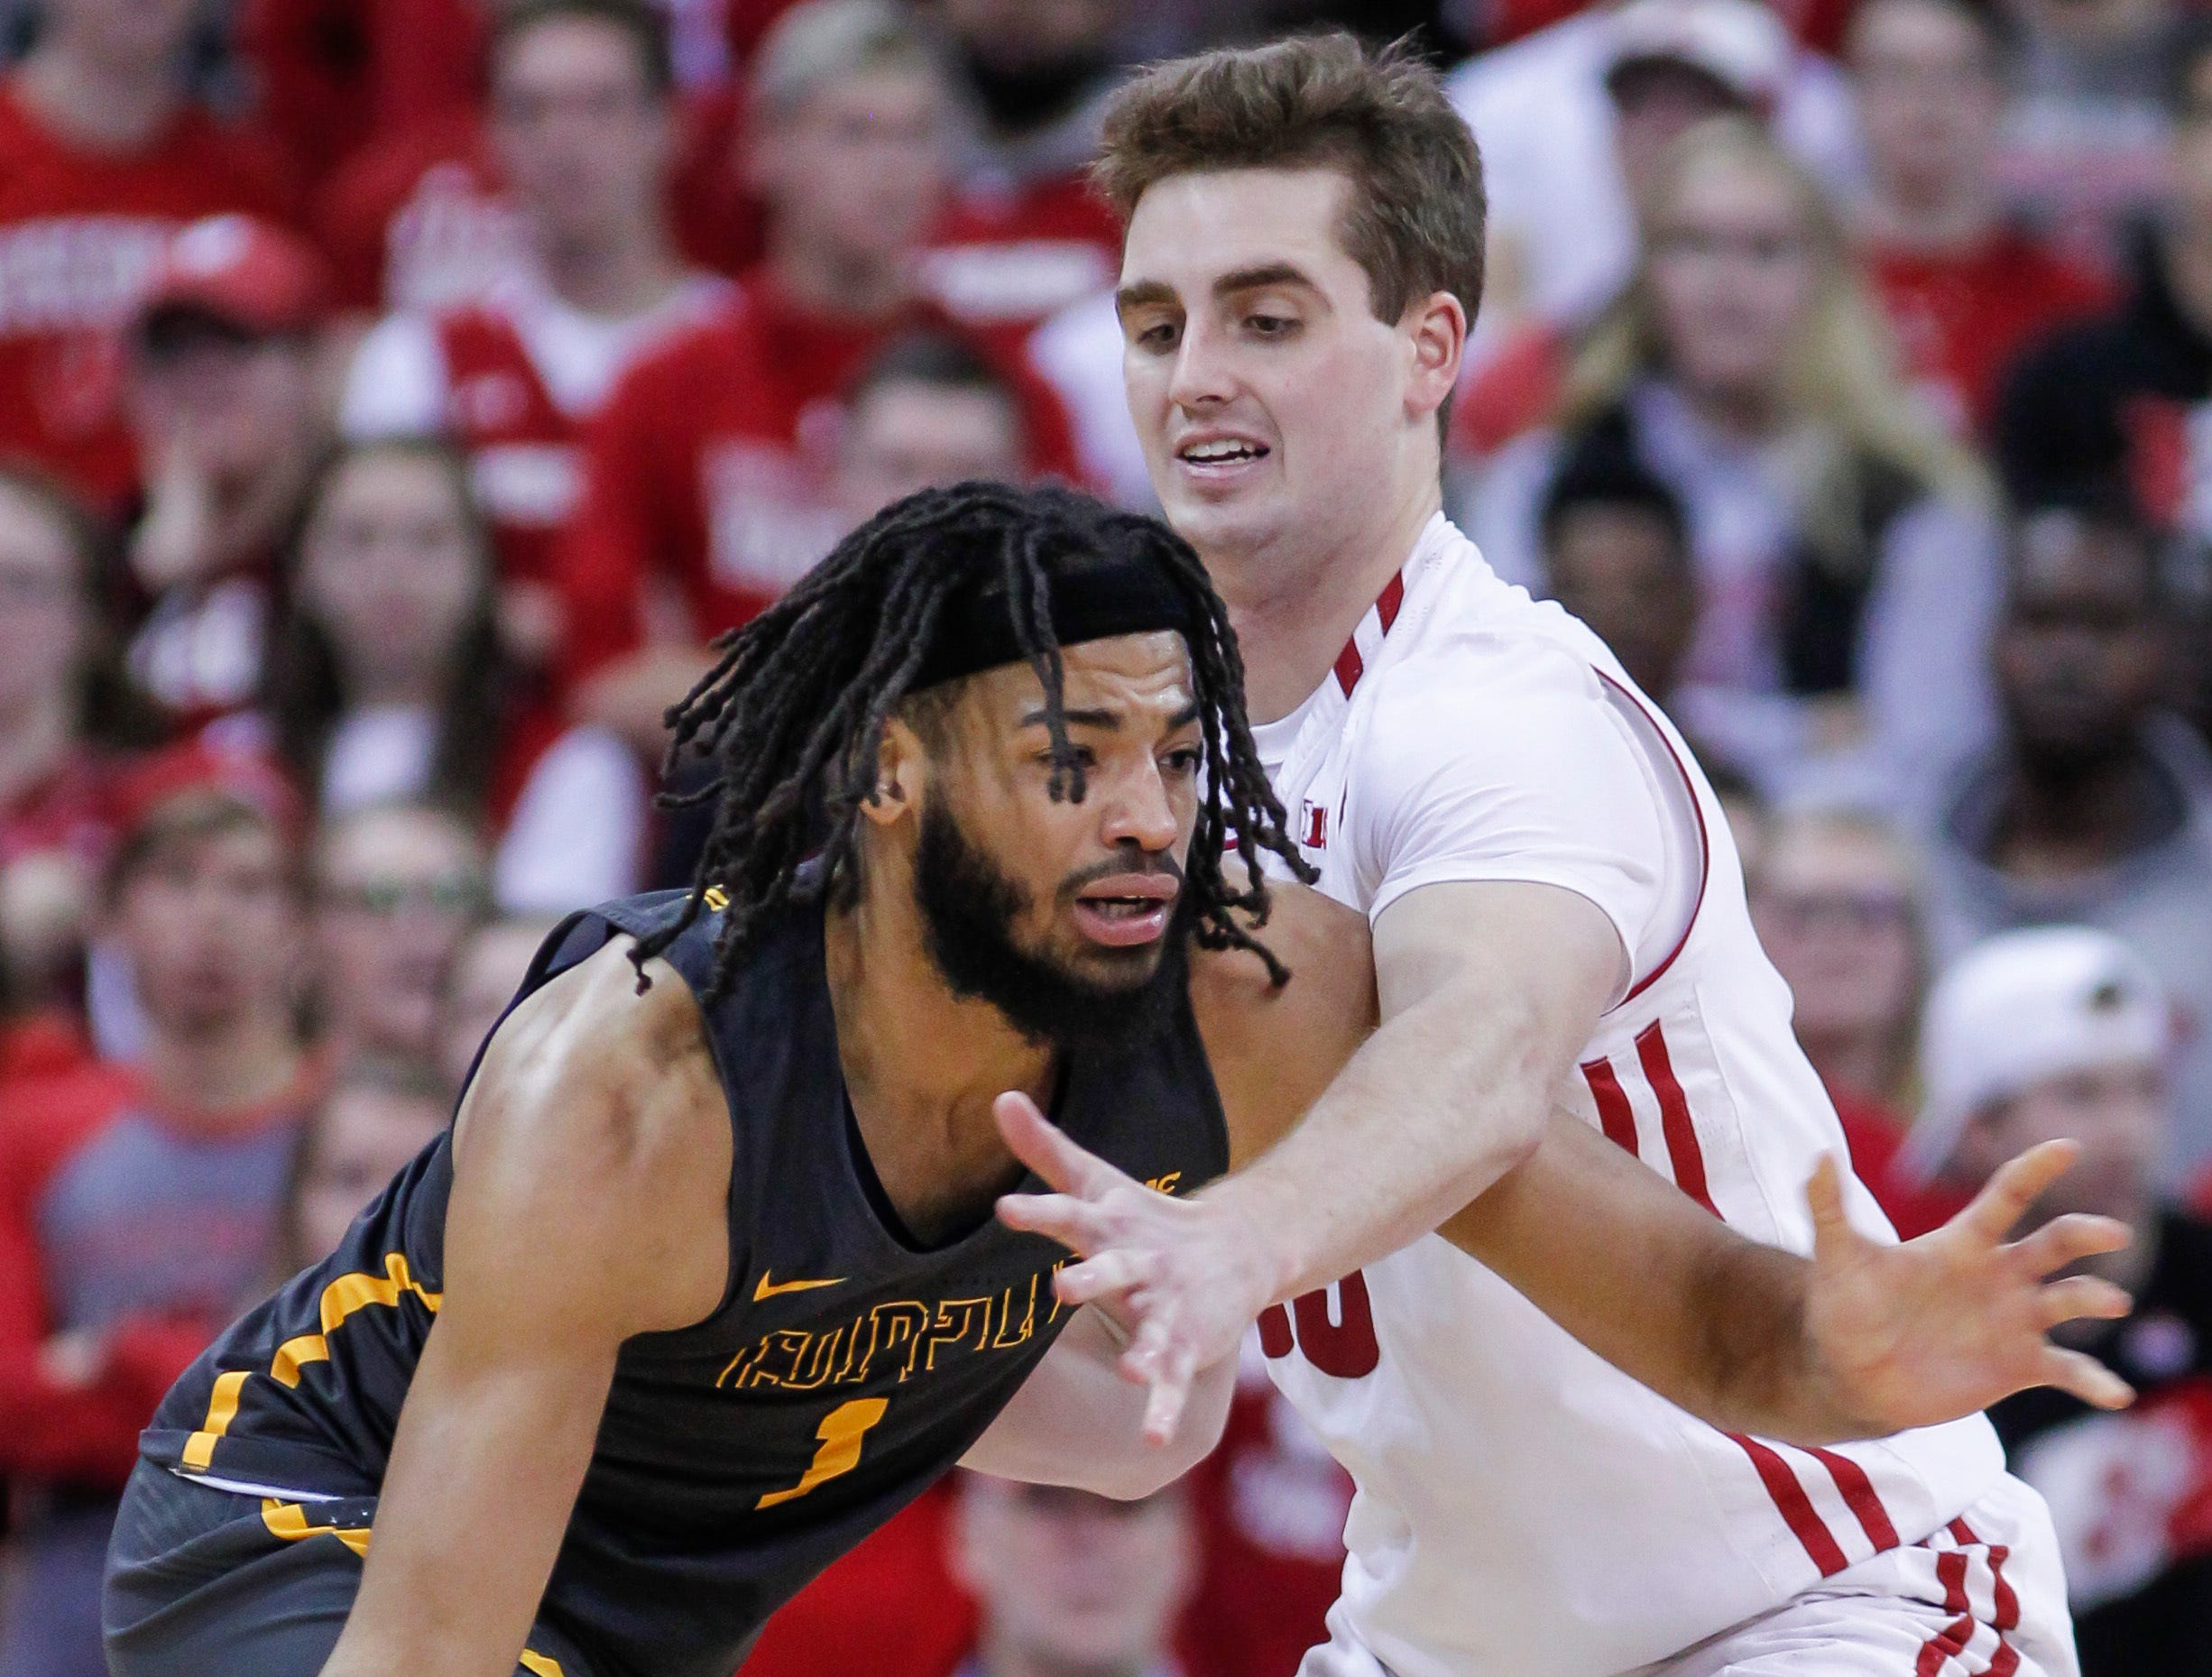 Wisconsin's Nate Reuvers reaches in on Coppin State's Chad Andrews-Fulton